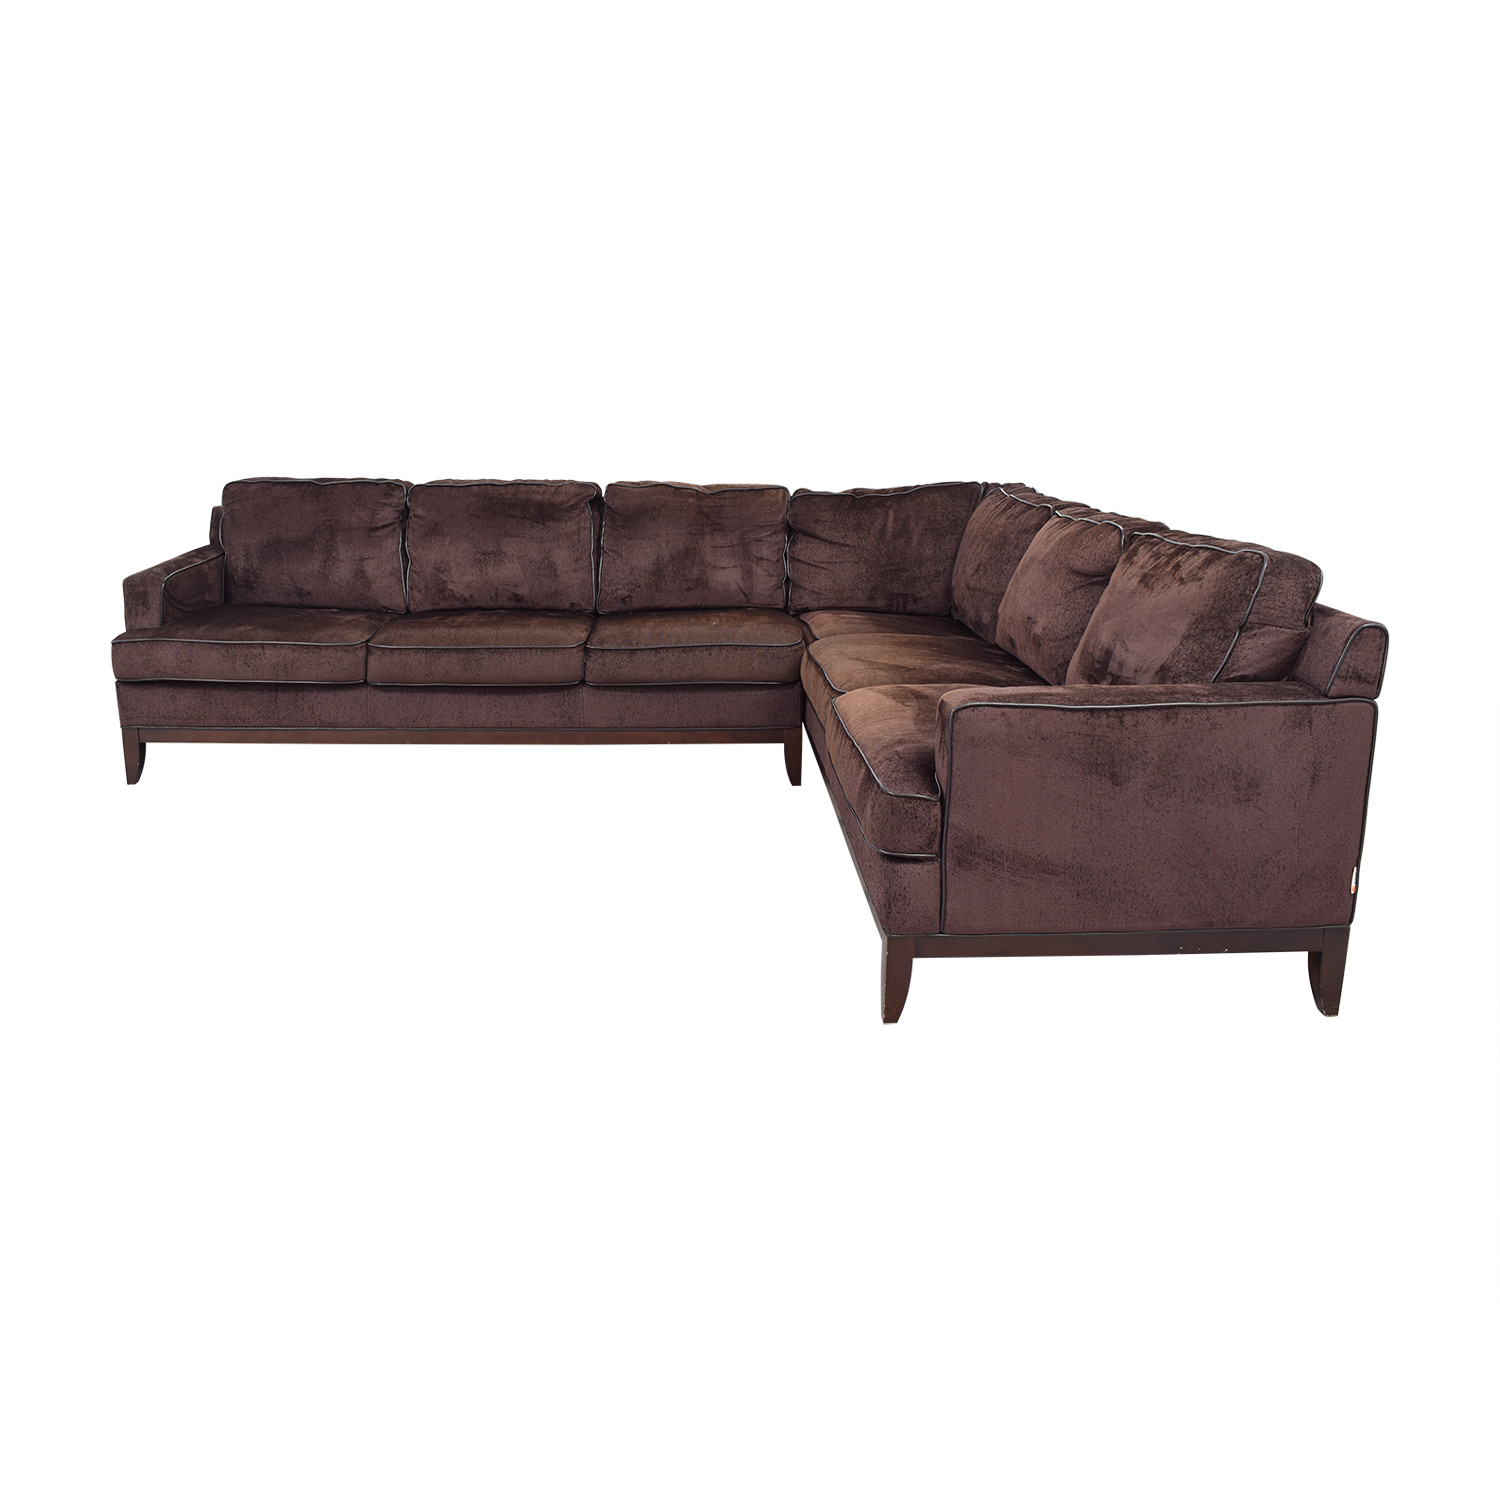 Simon Li Sectional Sofa / Sofas